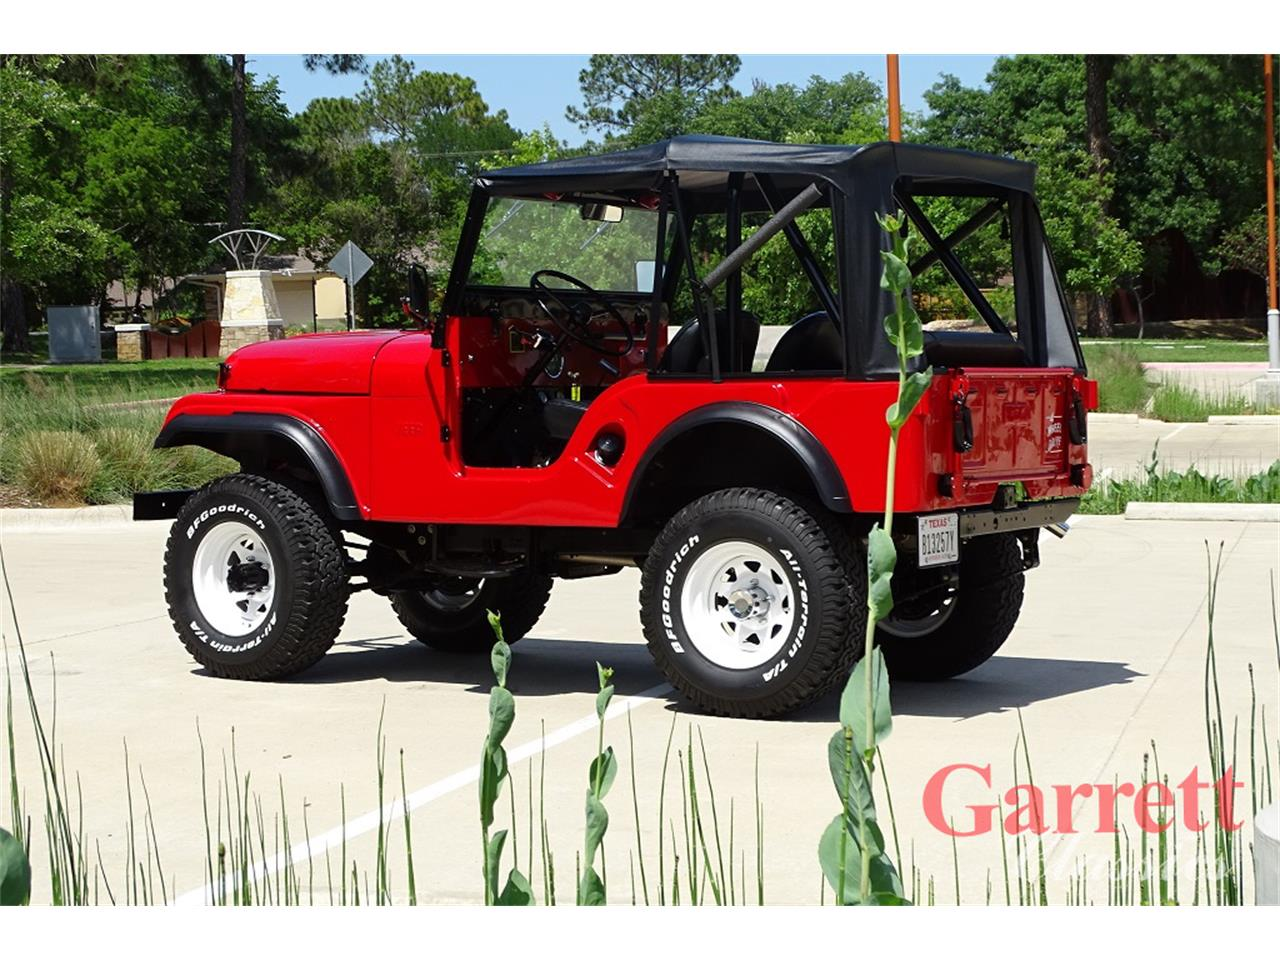 Large Picture of Classic '64 Jeep located in TEXAS (TX) Offered by Garrett Classics - Q4KI